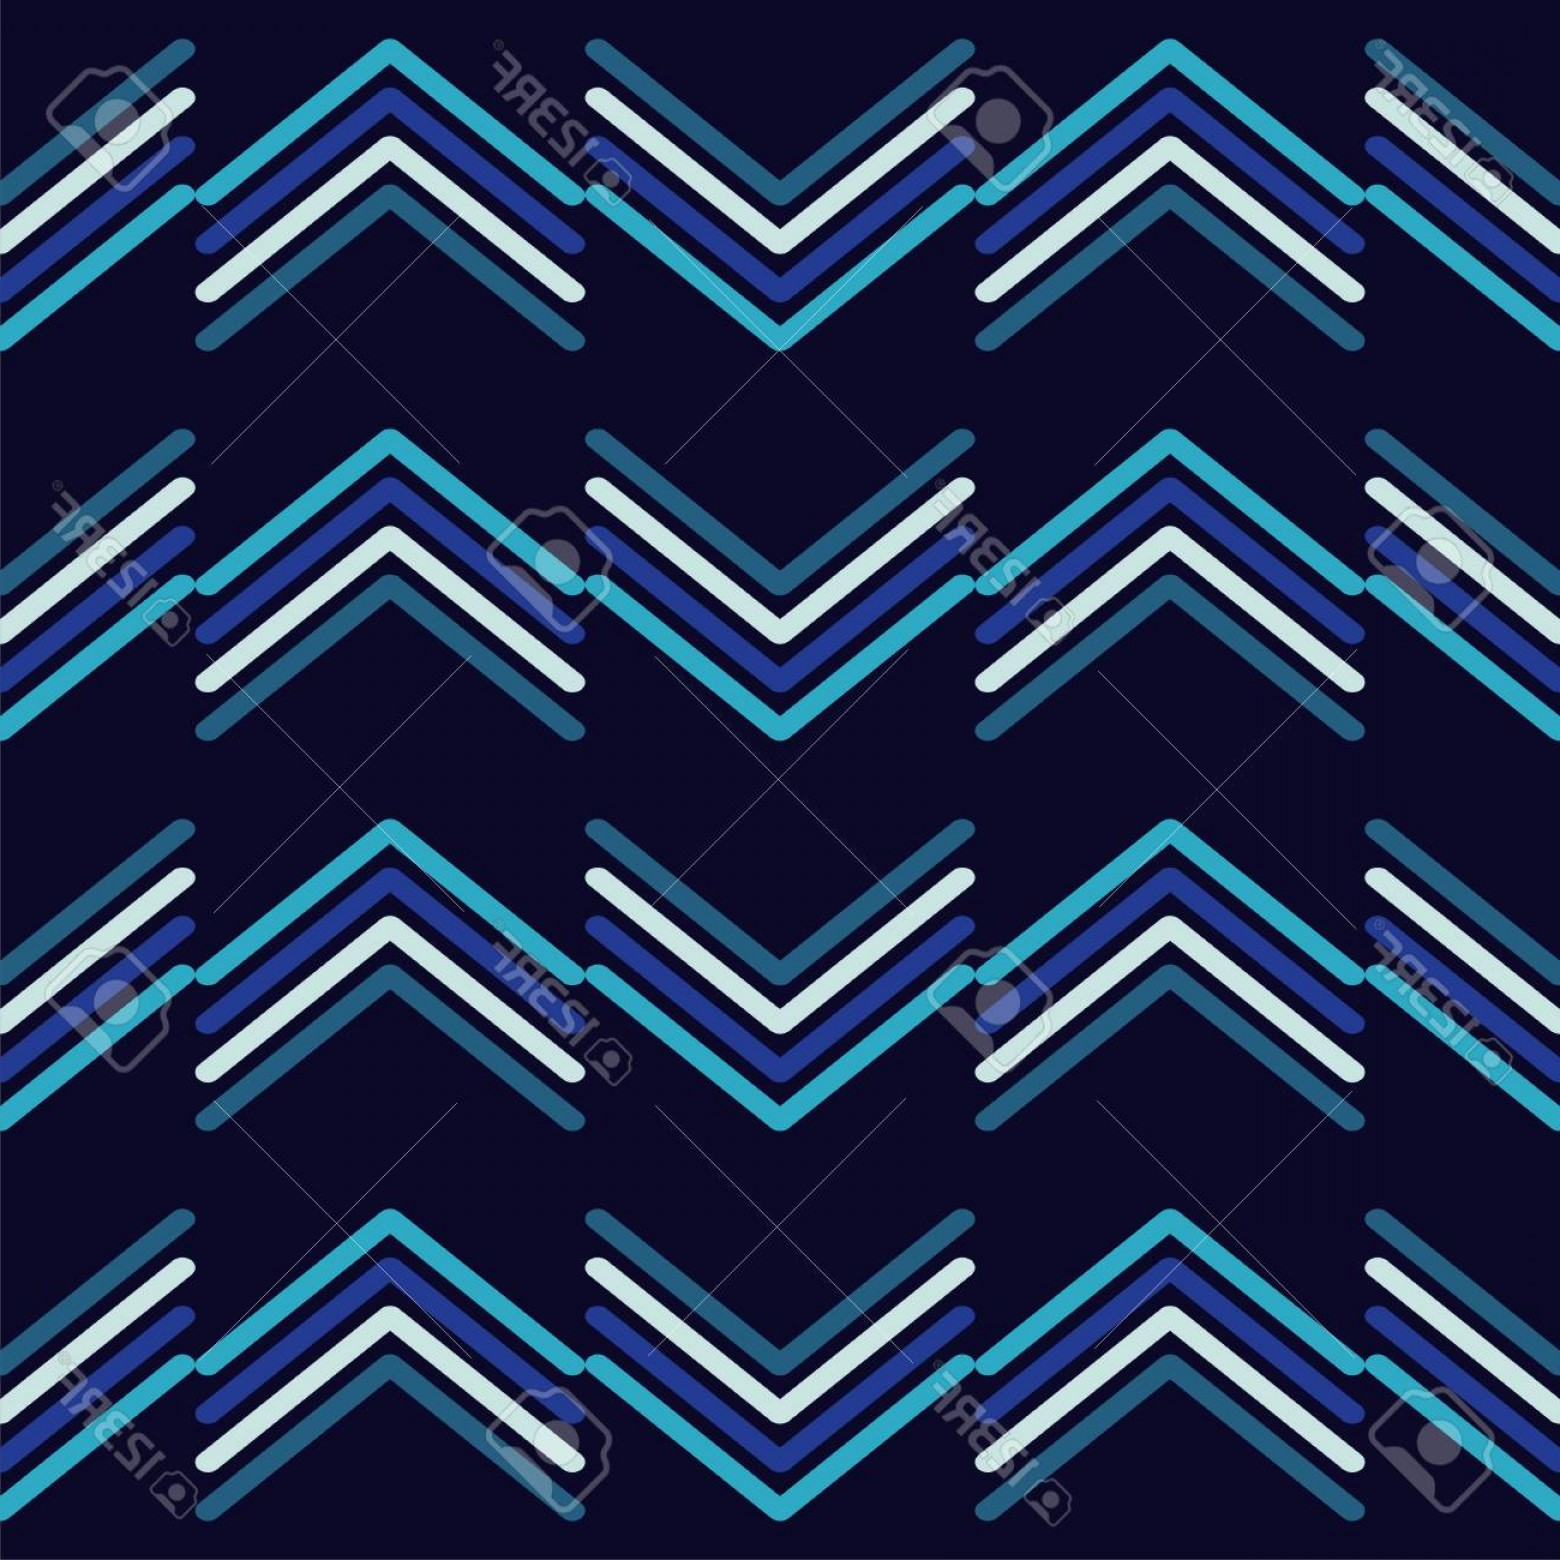 Rapport Vector: Photostock Vector Seamless Geometric Pattern The Texture Of The Strips Textile Rapport Vector Illustration